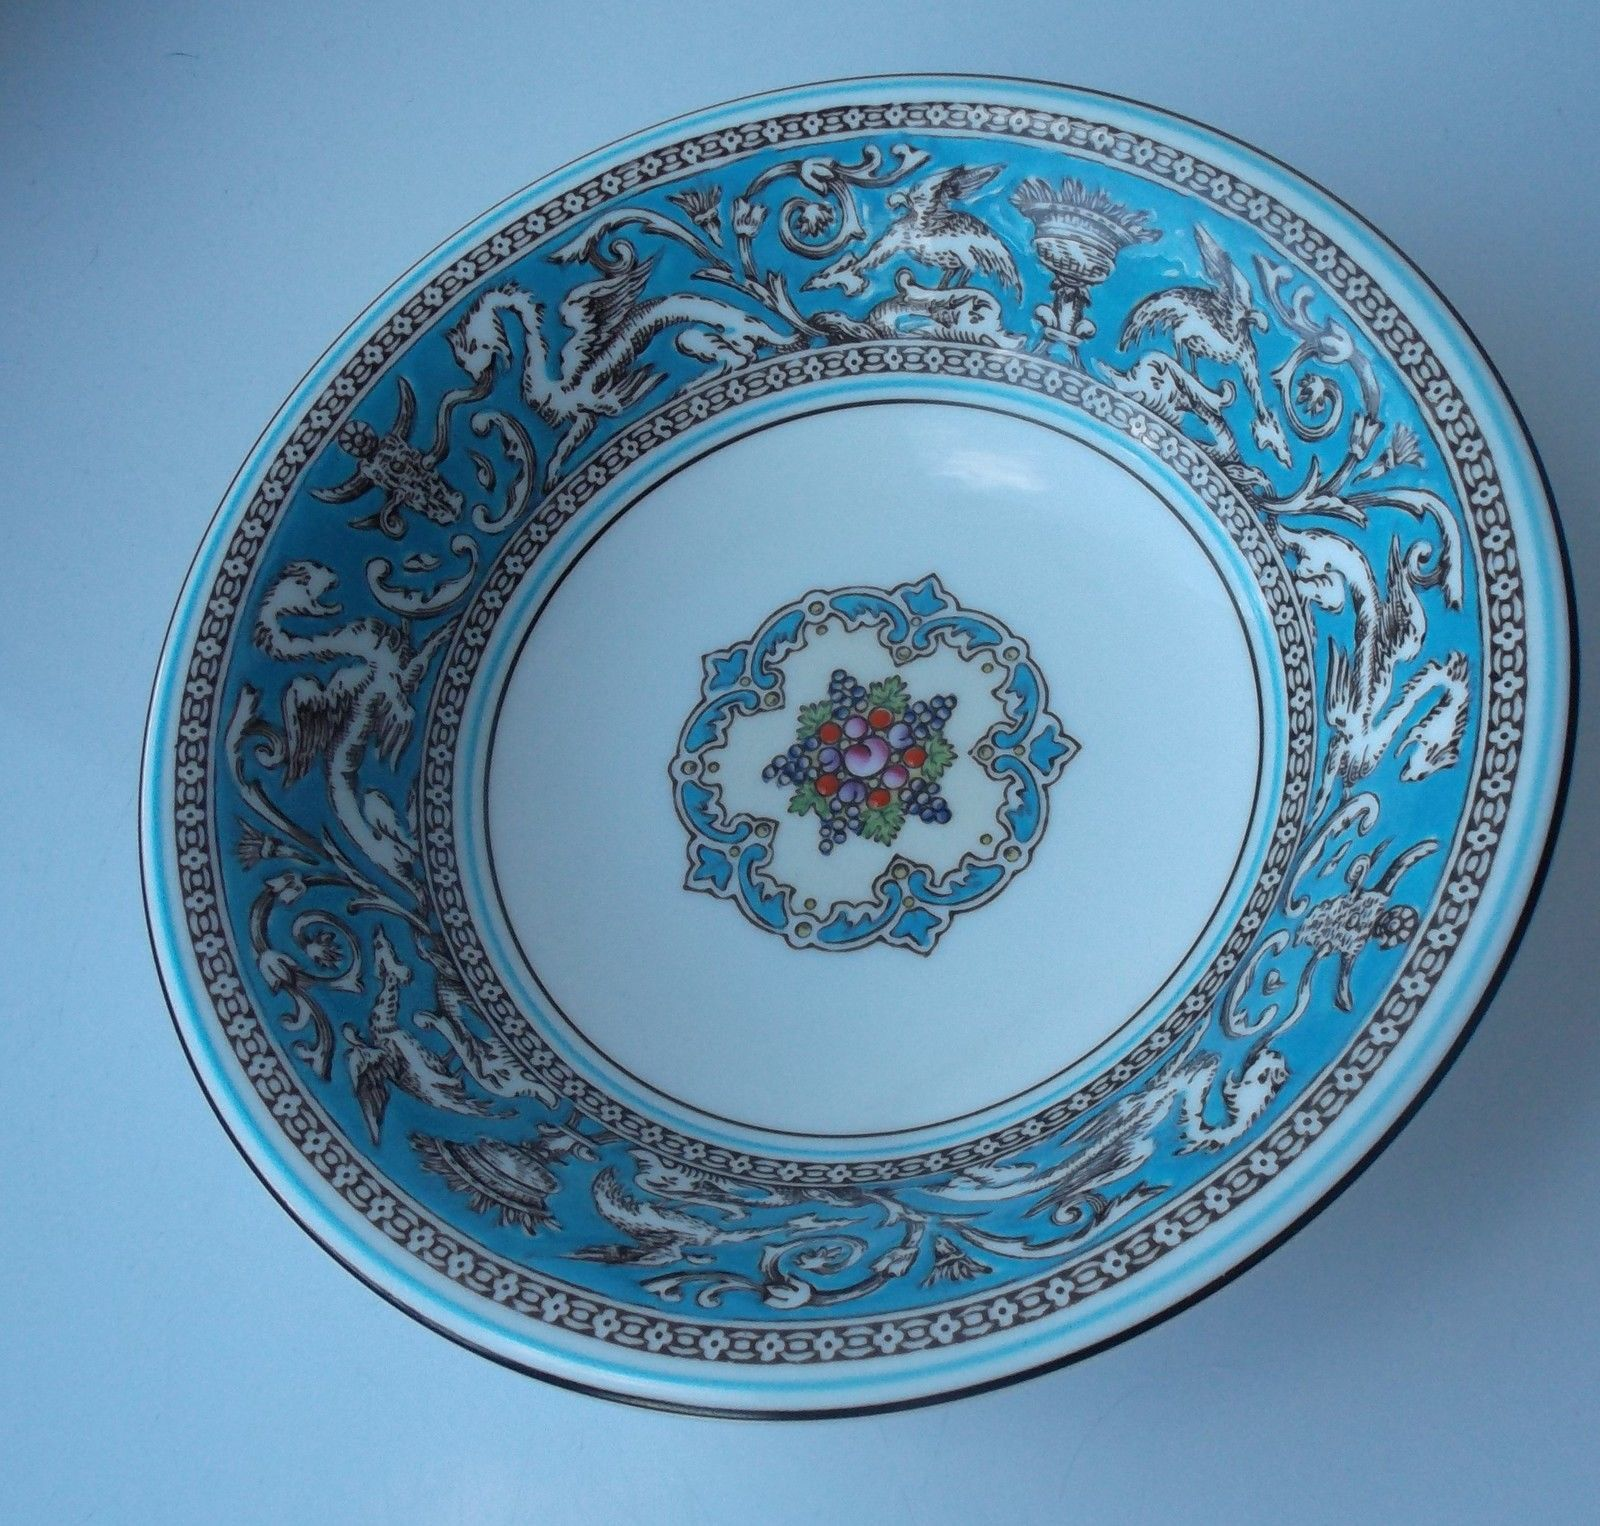 Wedgwood Turquoise Florentine 6  Fruit Saucer £12.99 or best offer / & Wedgwood Turquoise Florentine 6